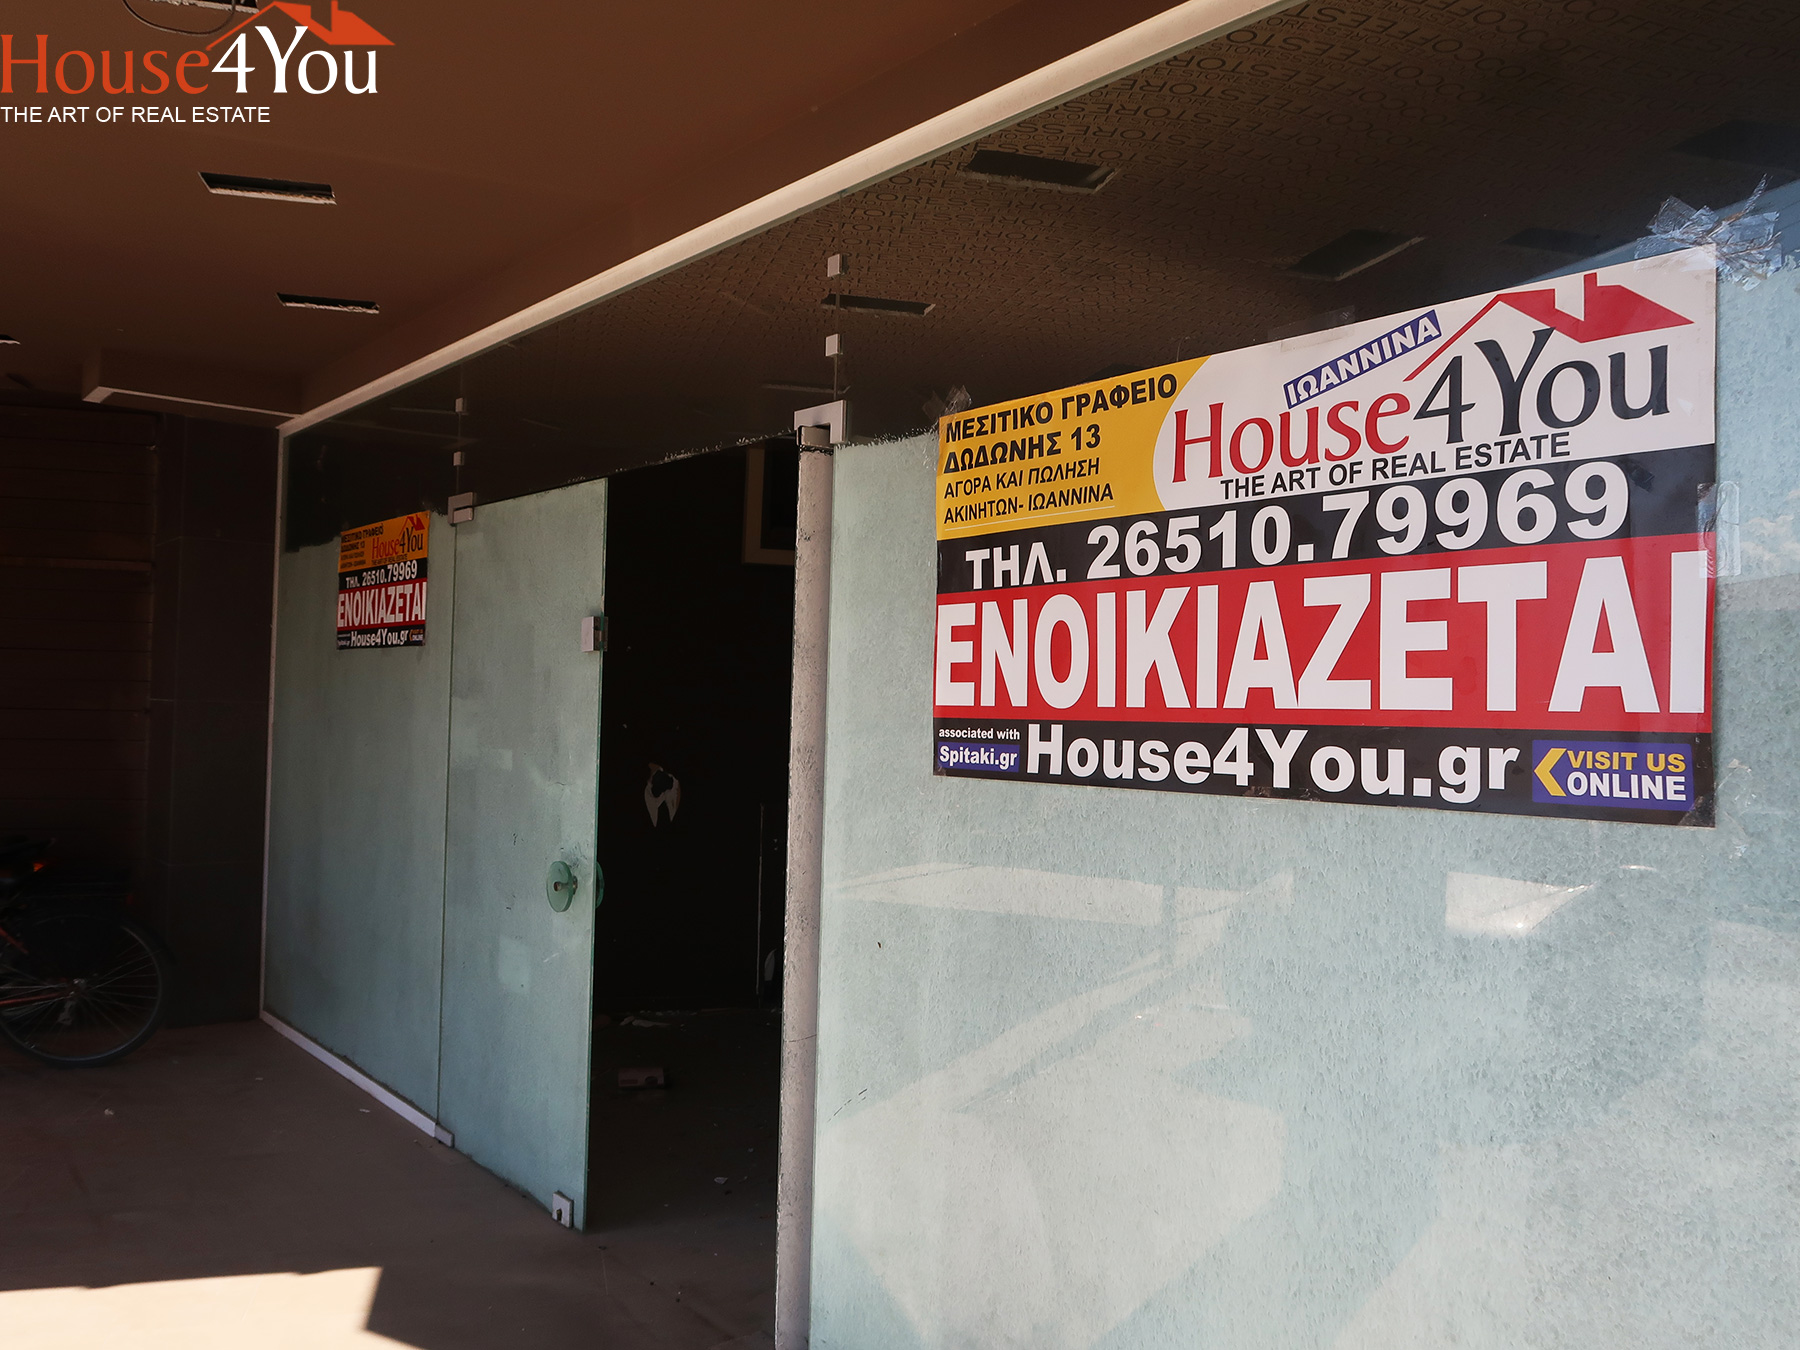 Commercial space for rent of a total of 223 sq.m. at 116 Dodonis Ave. in Ioannina